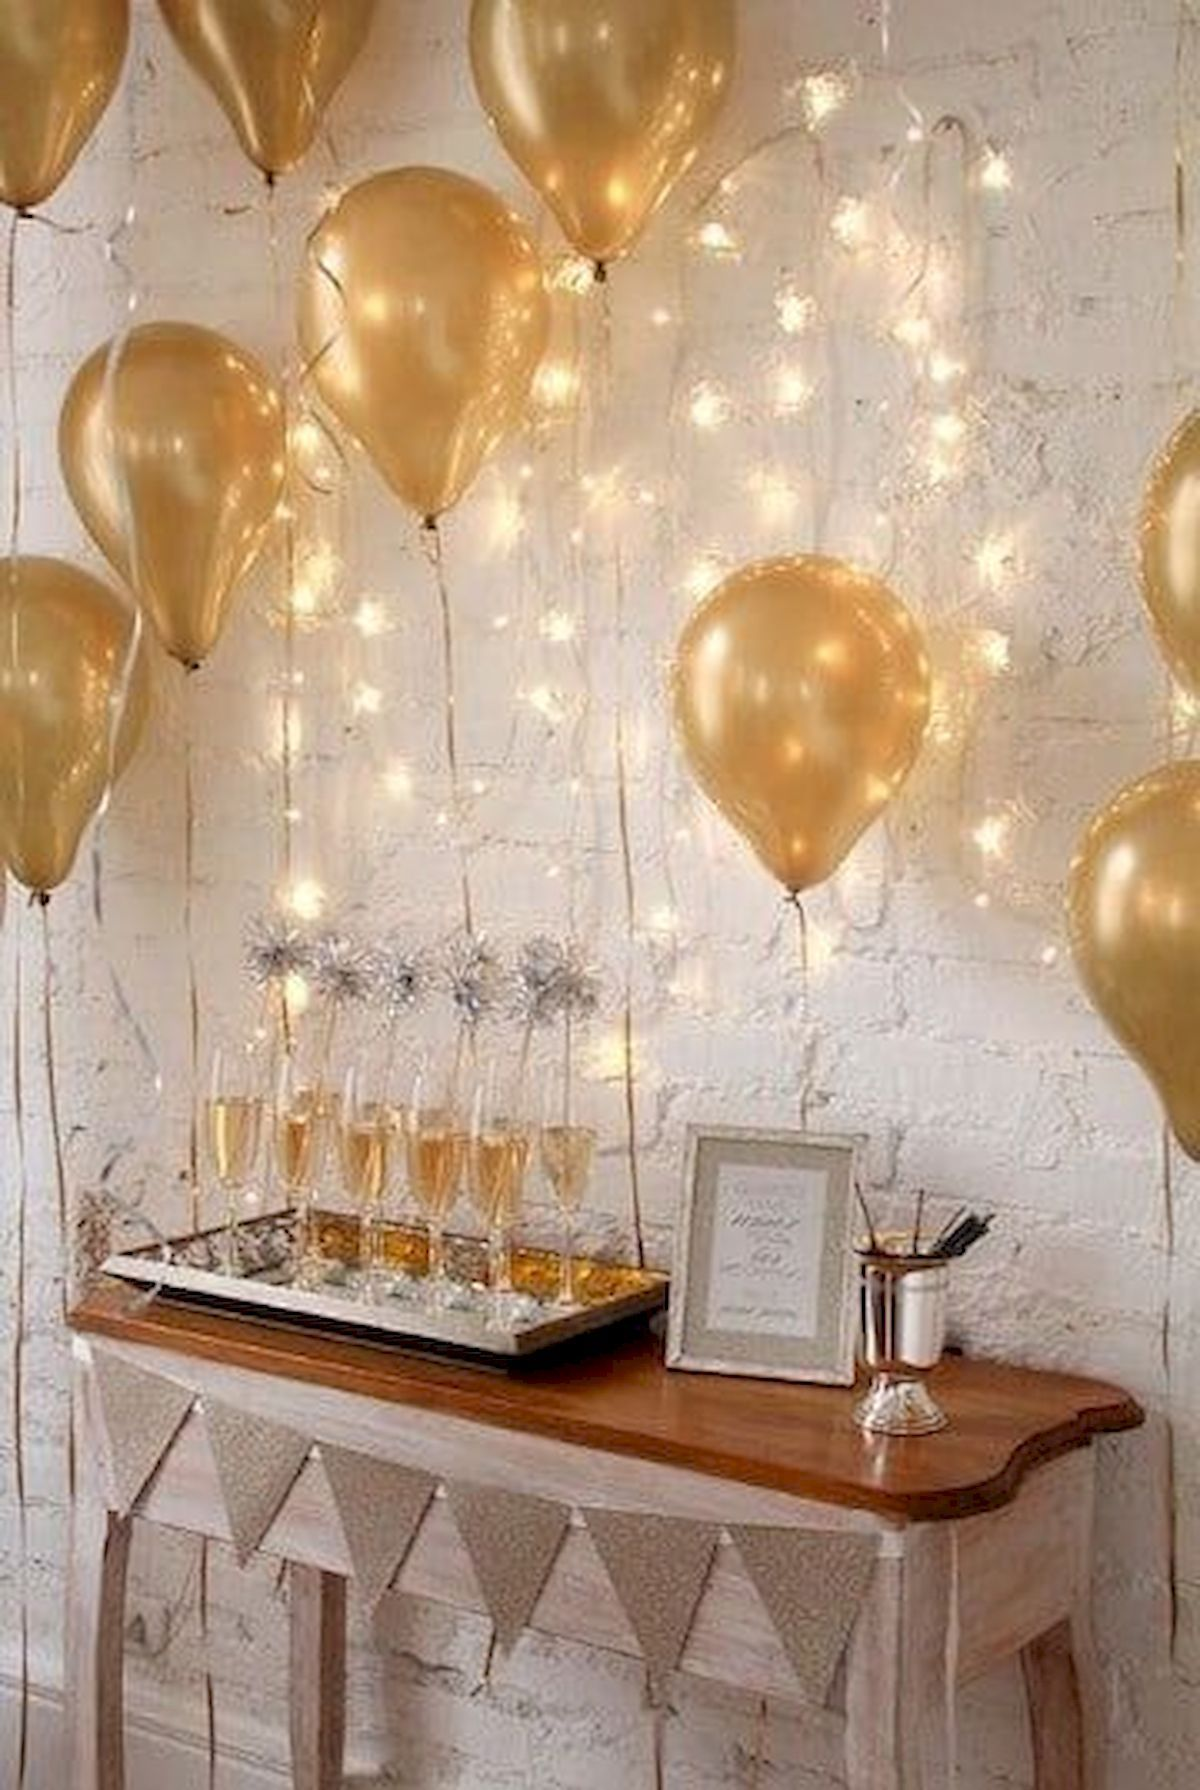 Birthday Party Decoration Ideas 33 New Years Eve Decorations 18th Birthday Party Gold Party Decorations